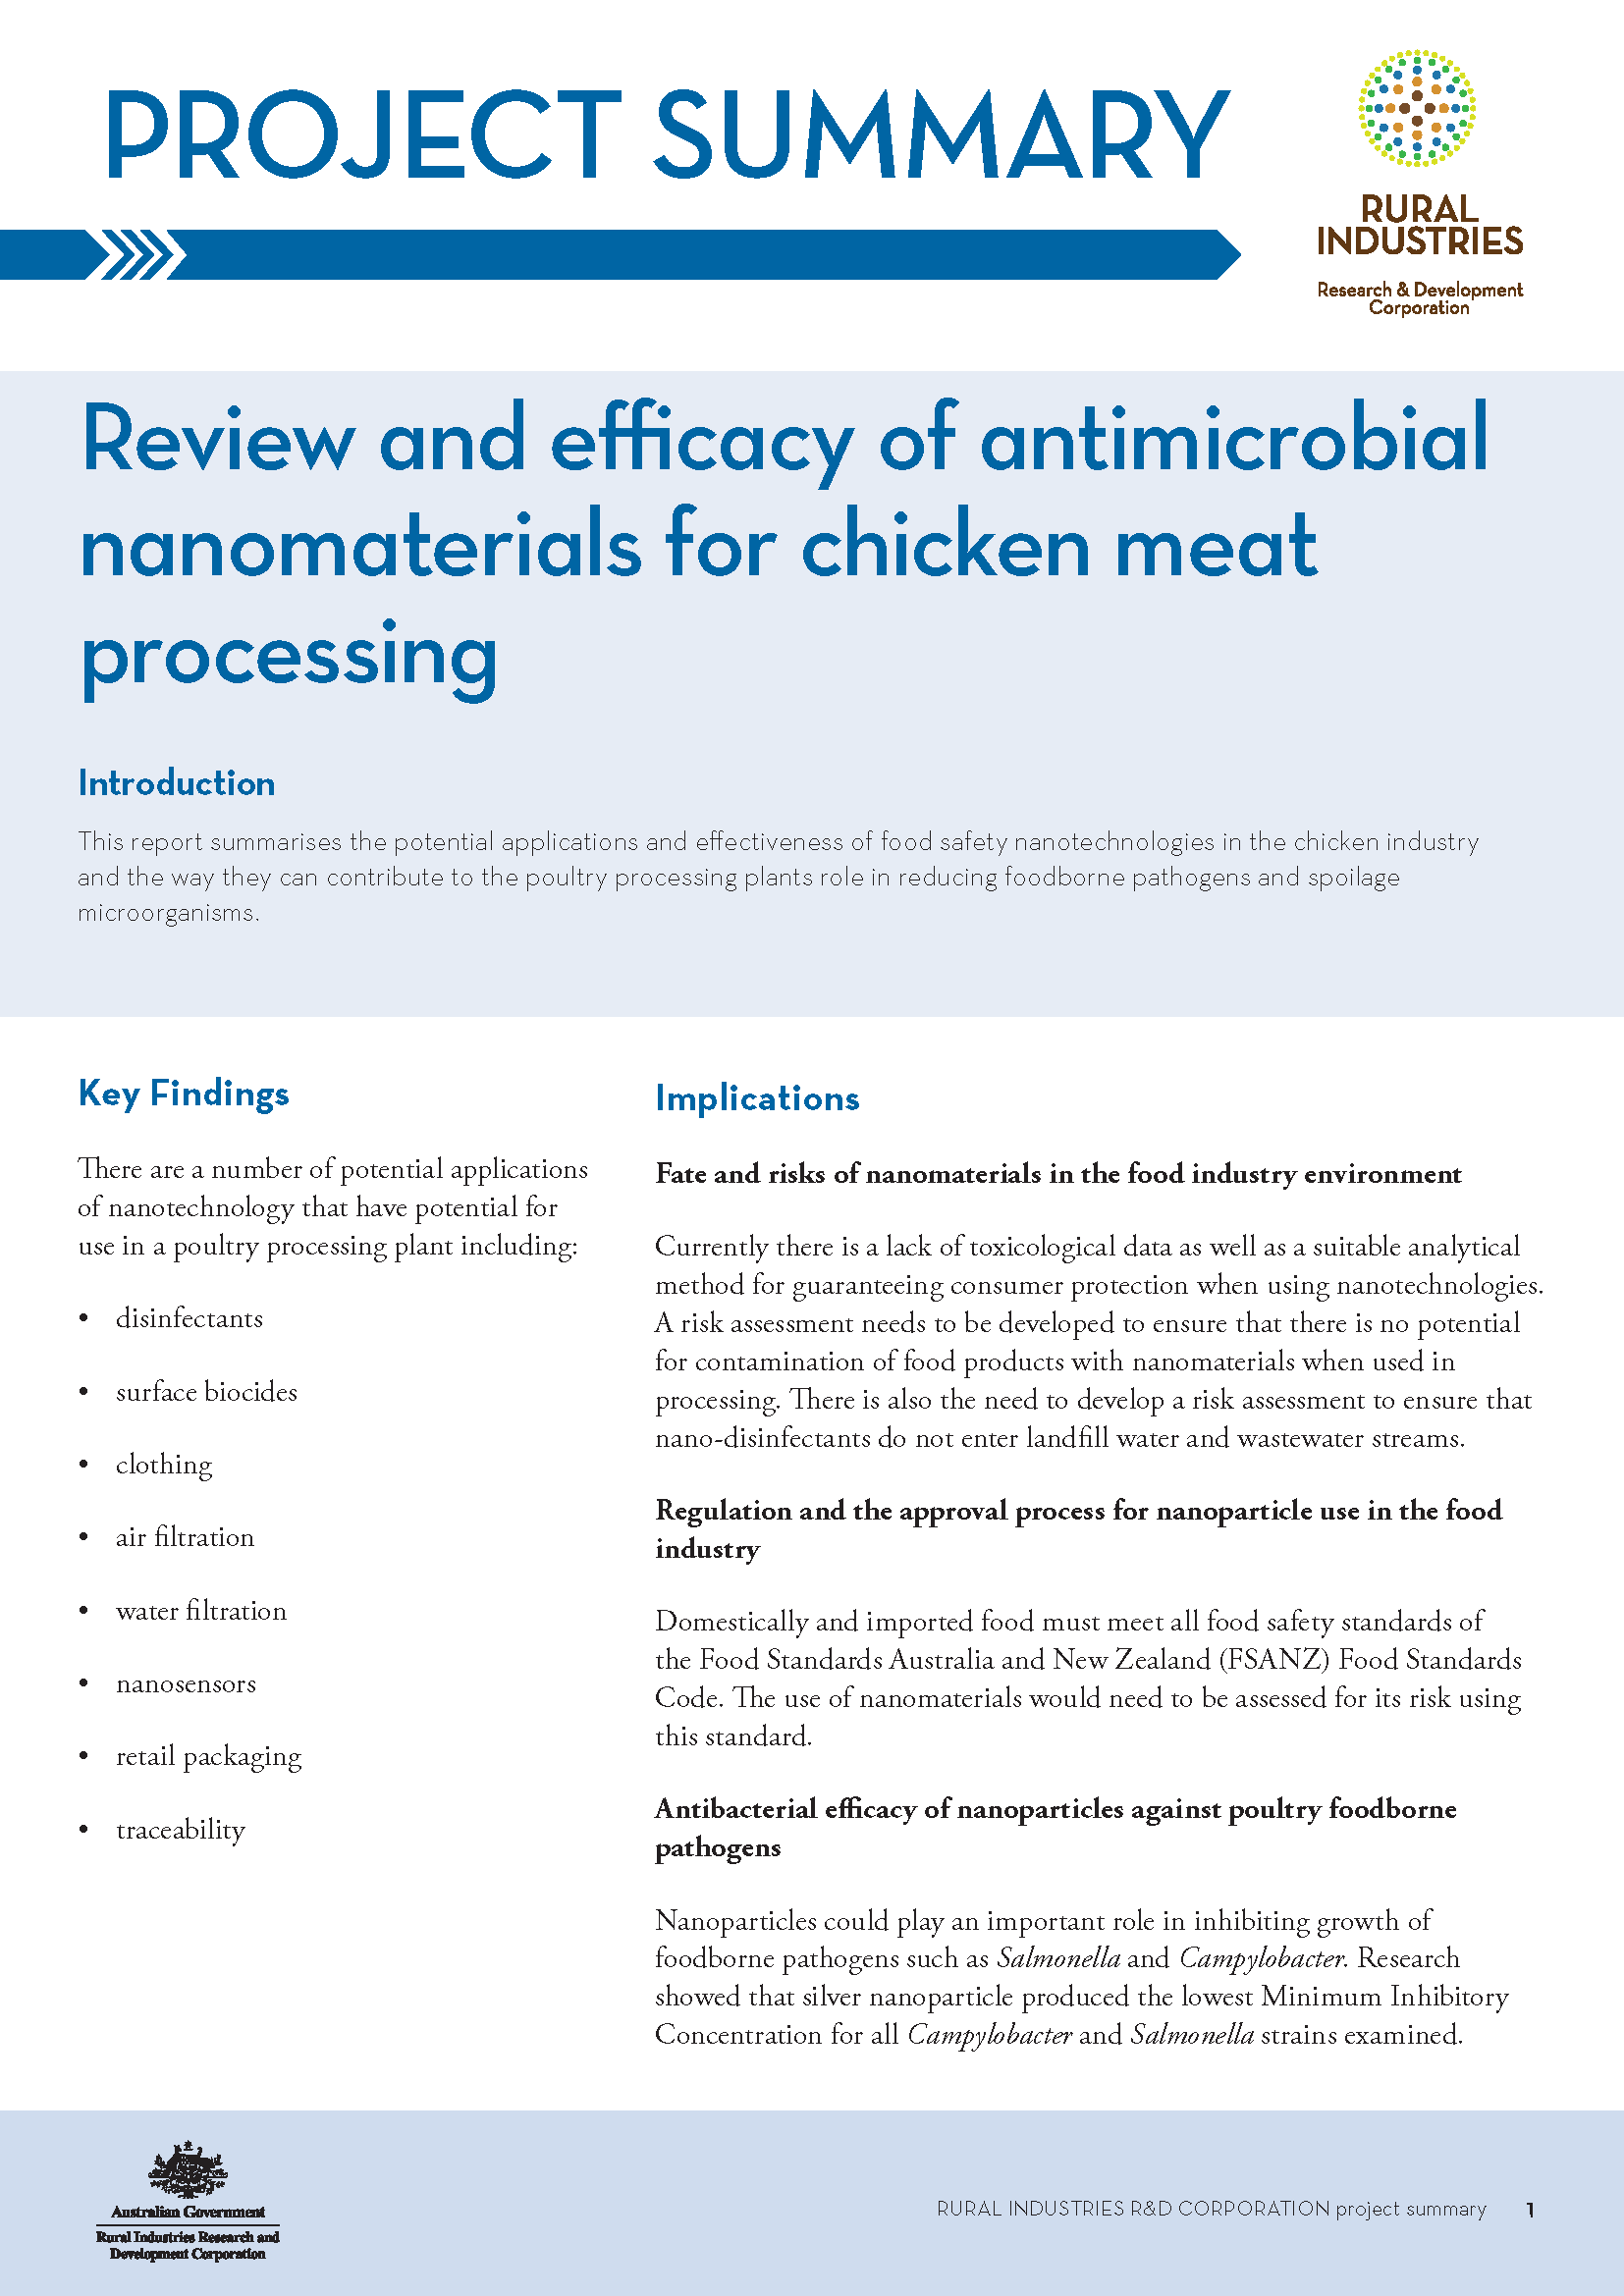 Project summary: Review and efficacy of antimicrobial nanomaterials for chicken meat processing - image